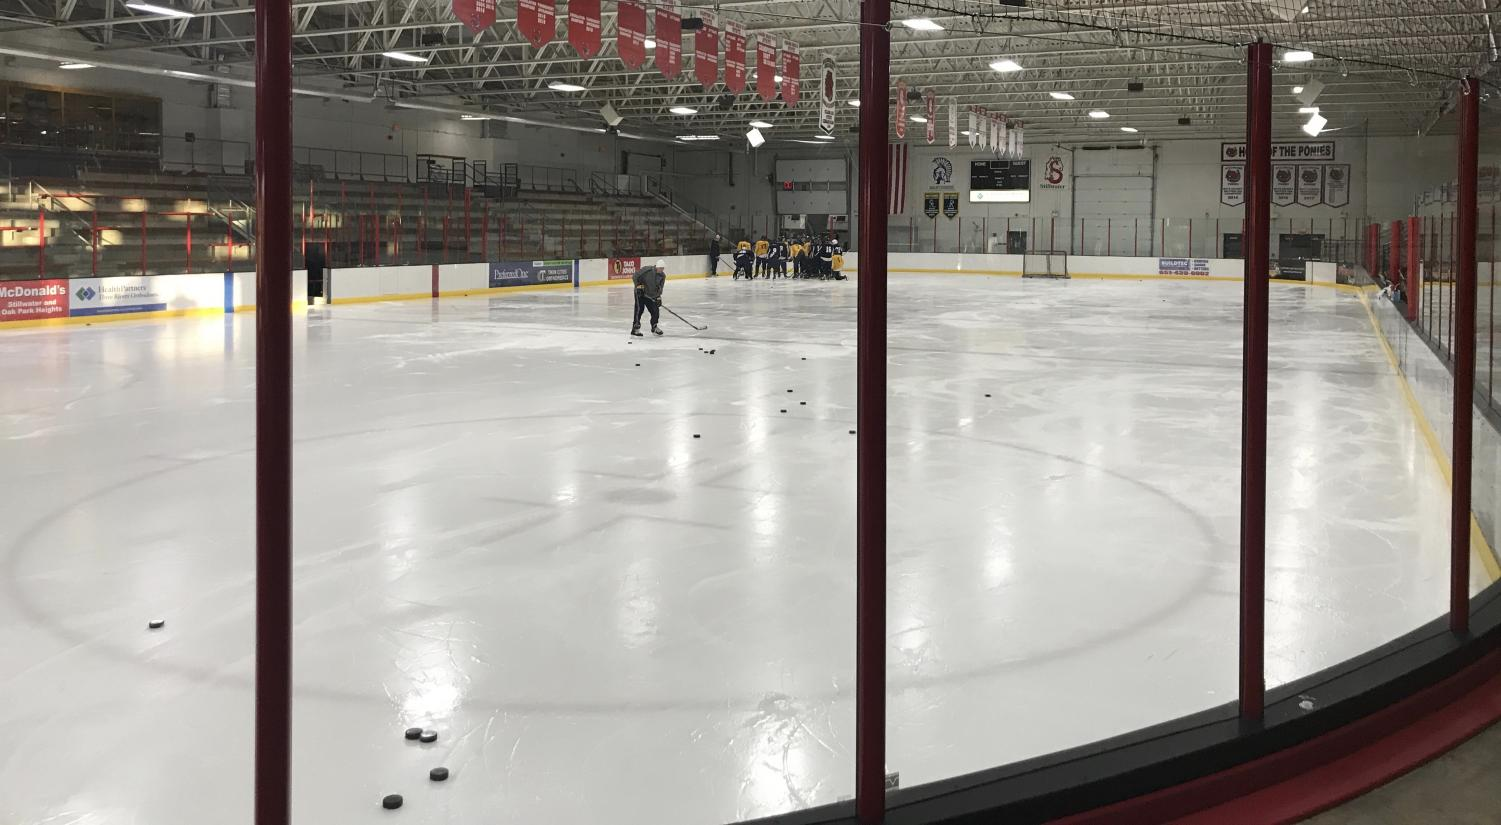 Stillwater Rec Center always at use with teams occupying space for practice. 19U team now practices here.